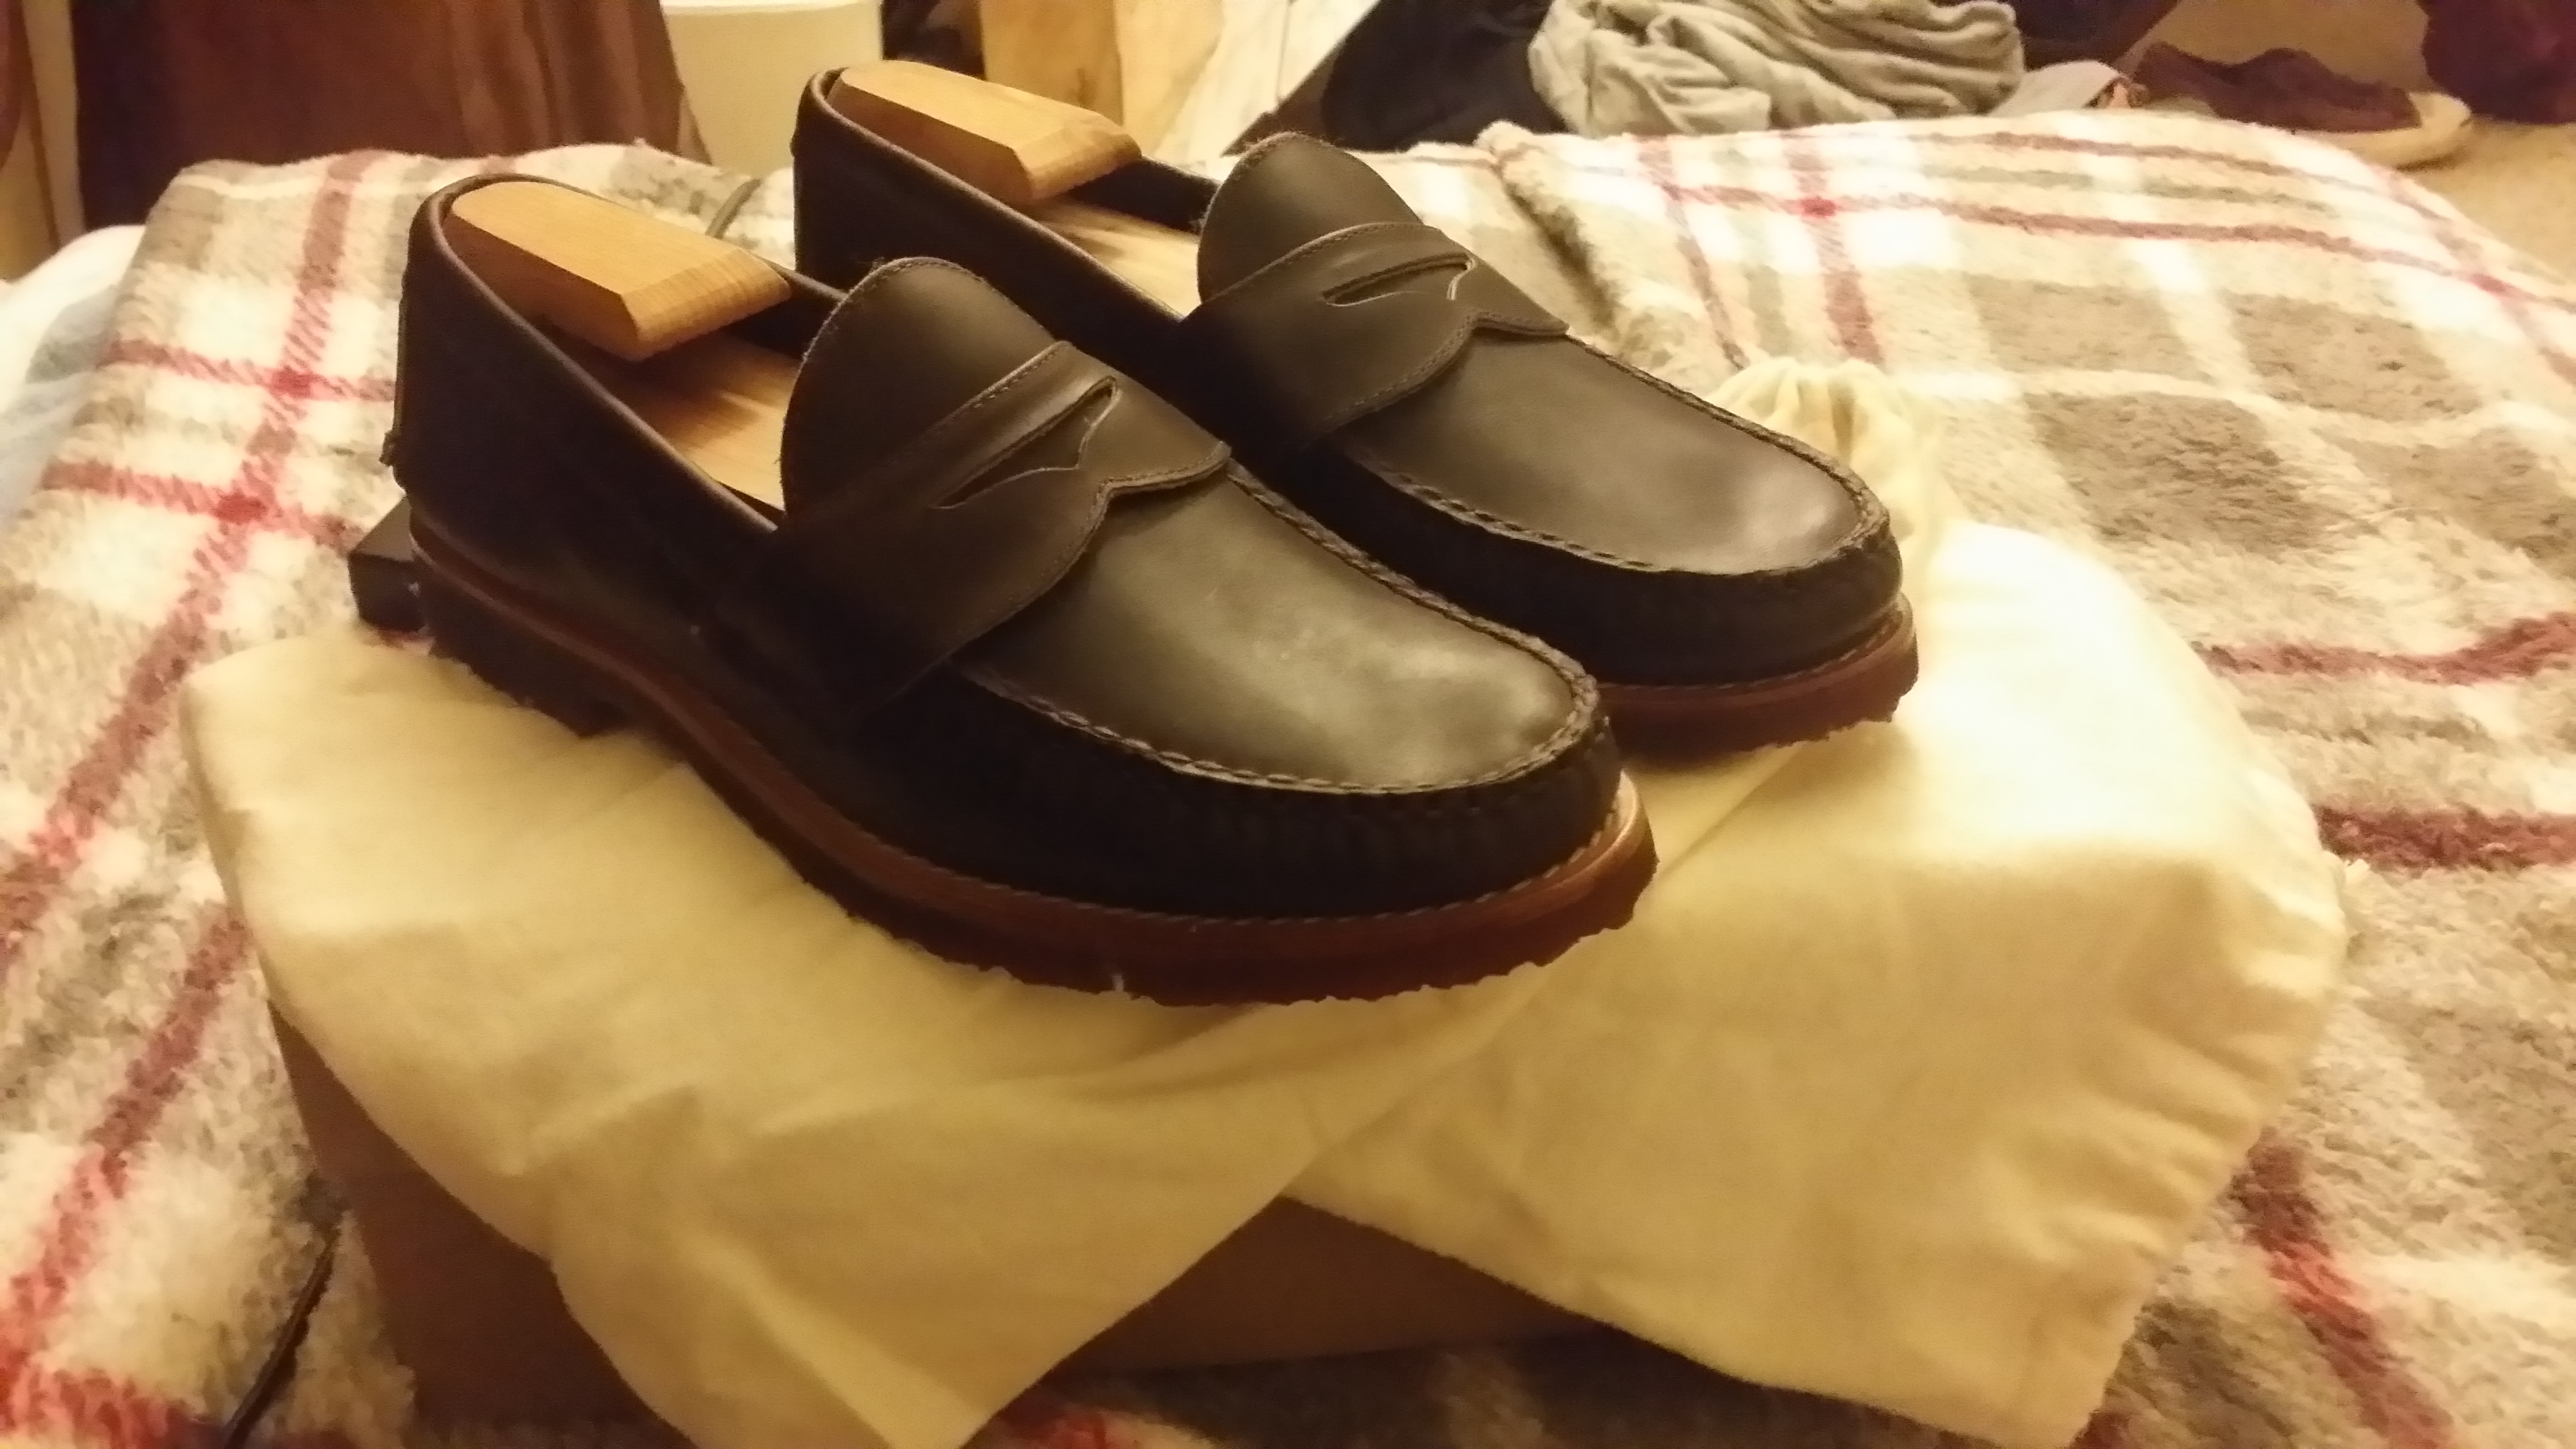 18a1027c872 Rancourt   Co. Pinch Penny Loafer Chocolate Size 9 - Formal Shoes ...